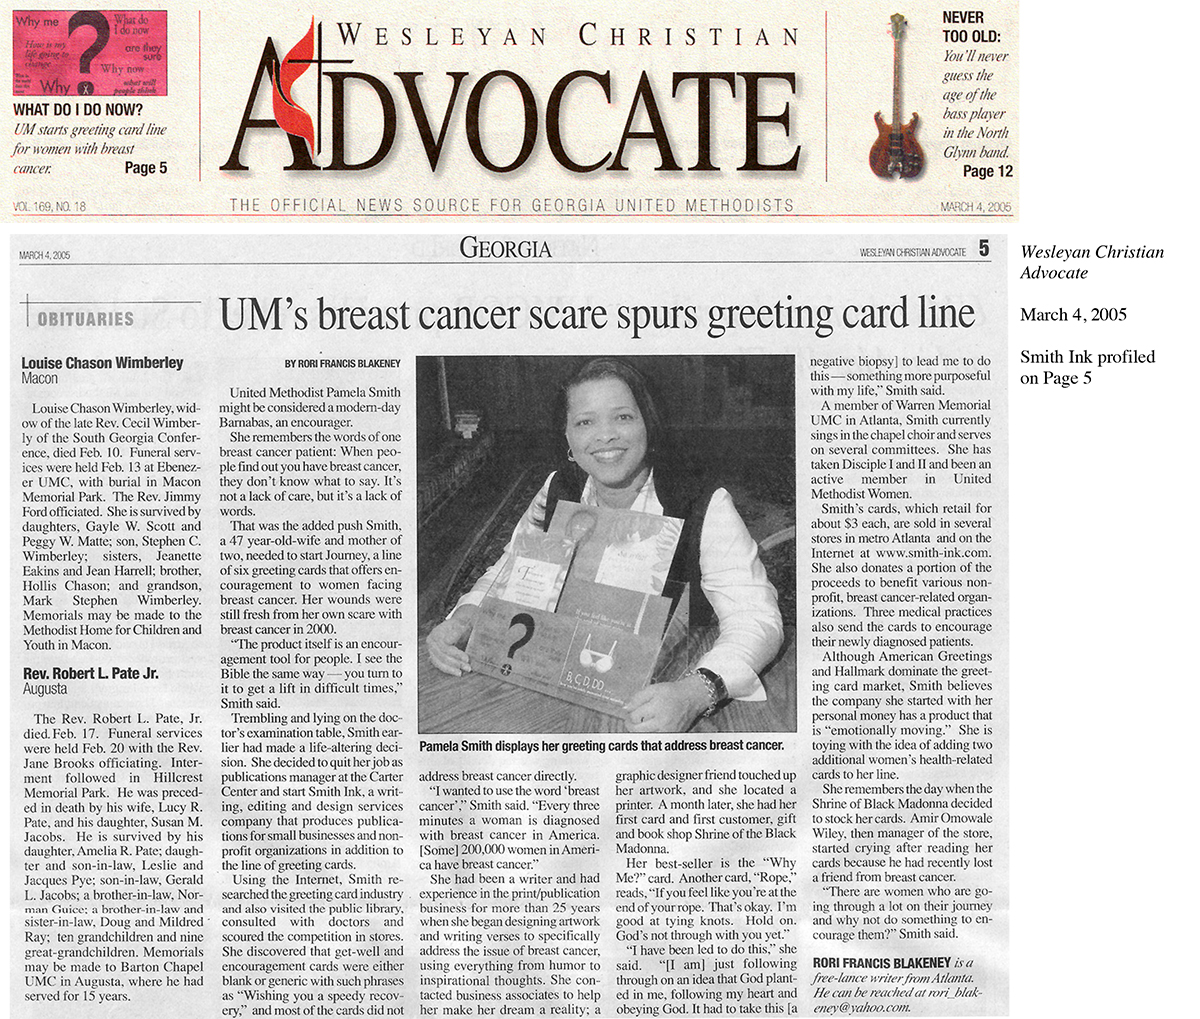 Advocate article on Smith Ink Cards